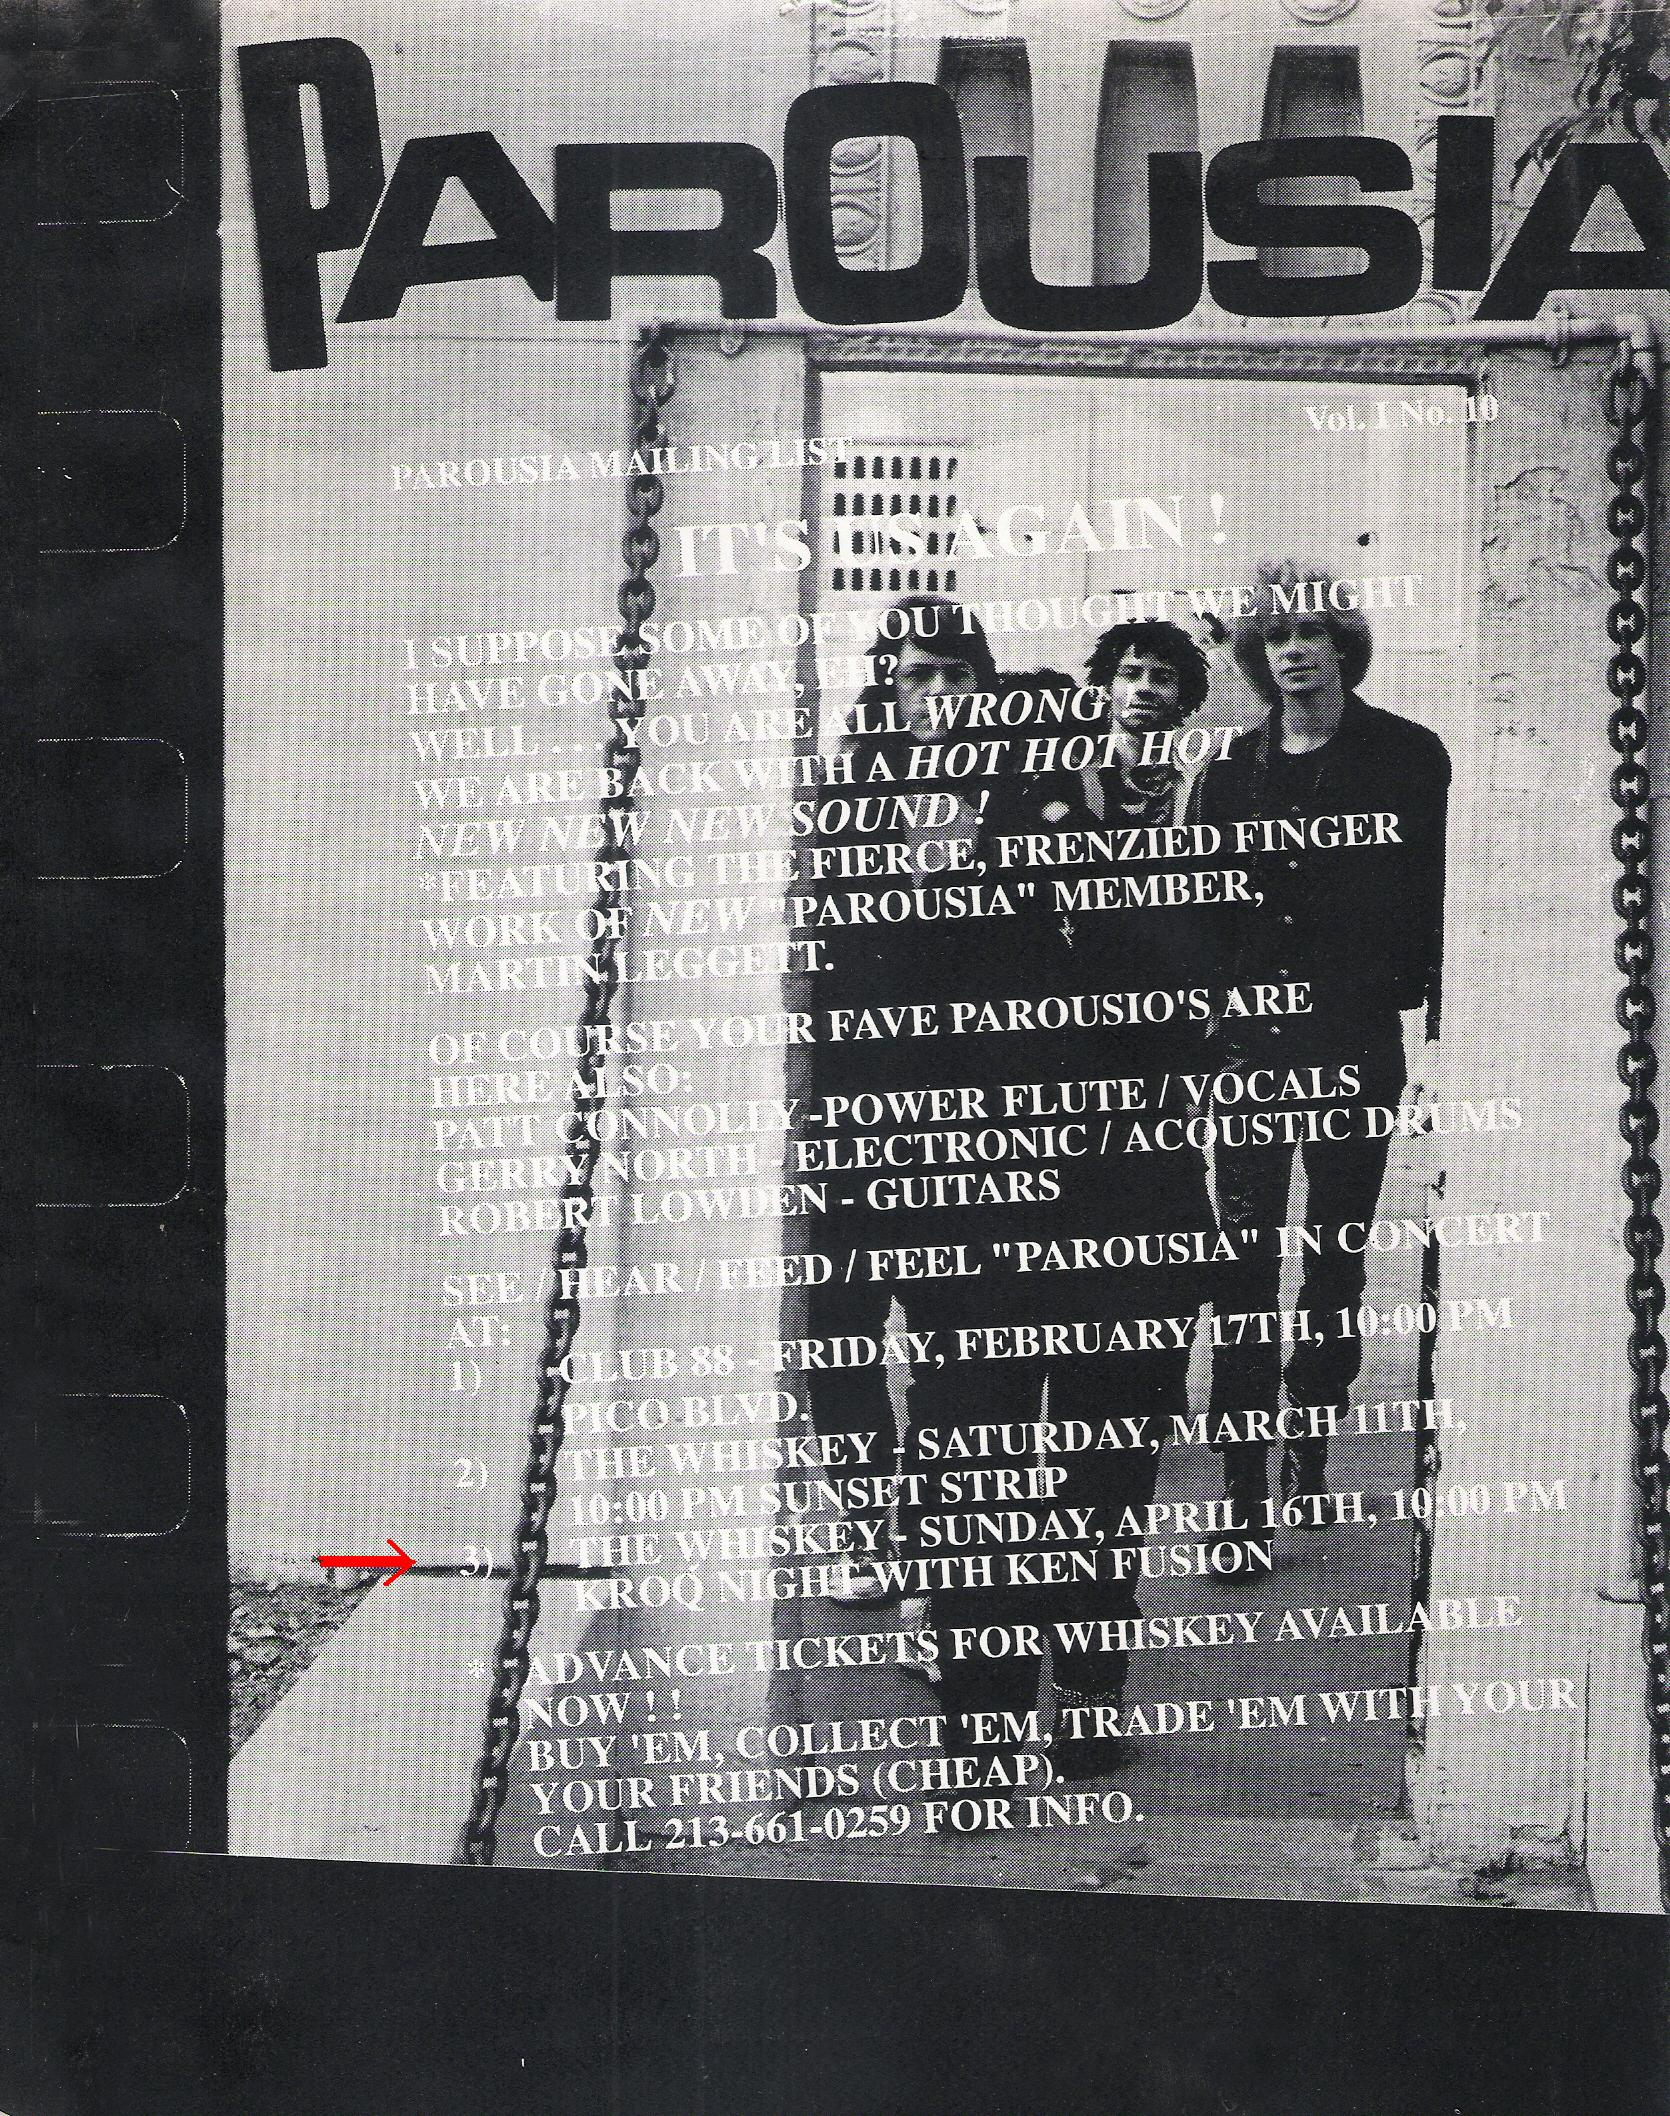 KROQ presents Parousia at the Whisky a go-go. Sunday, April 16th 1989